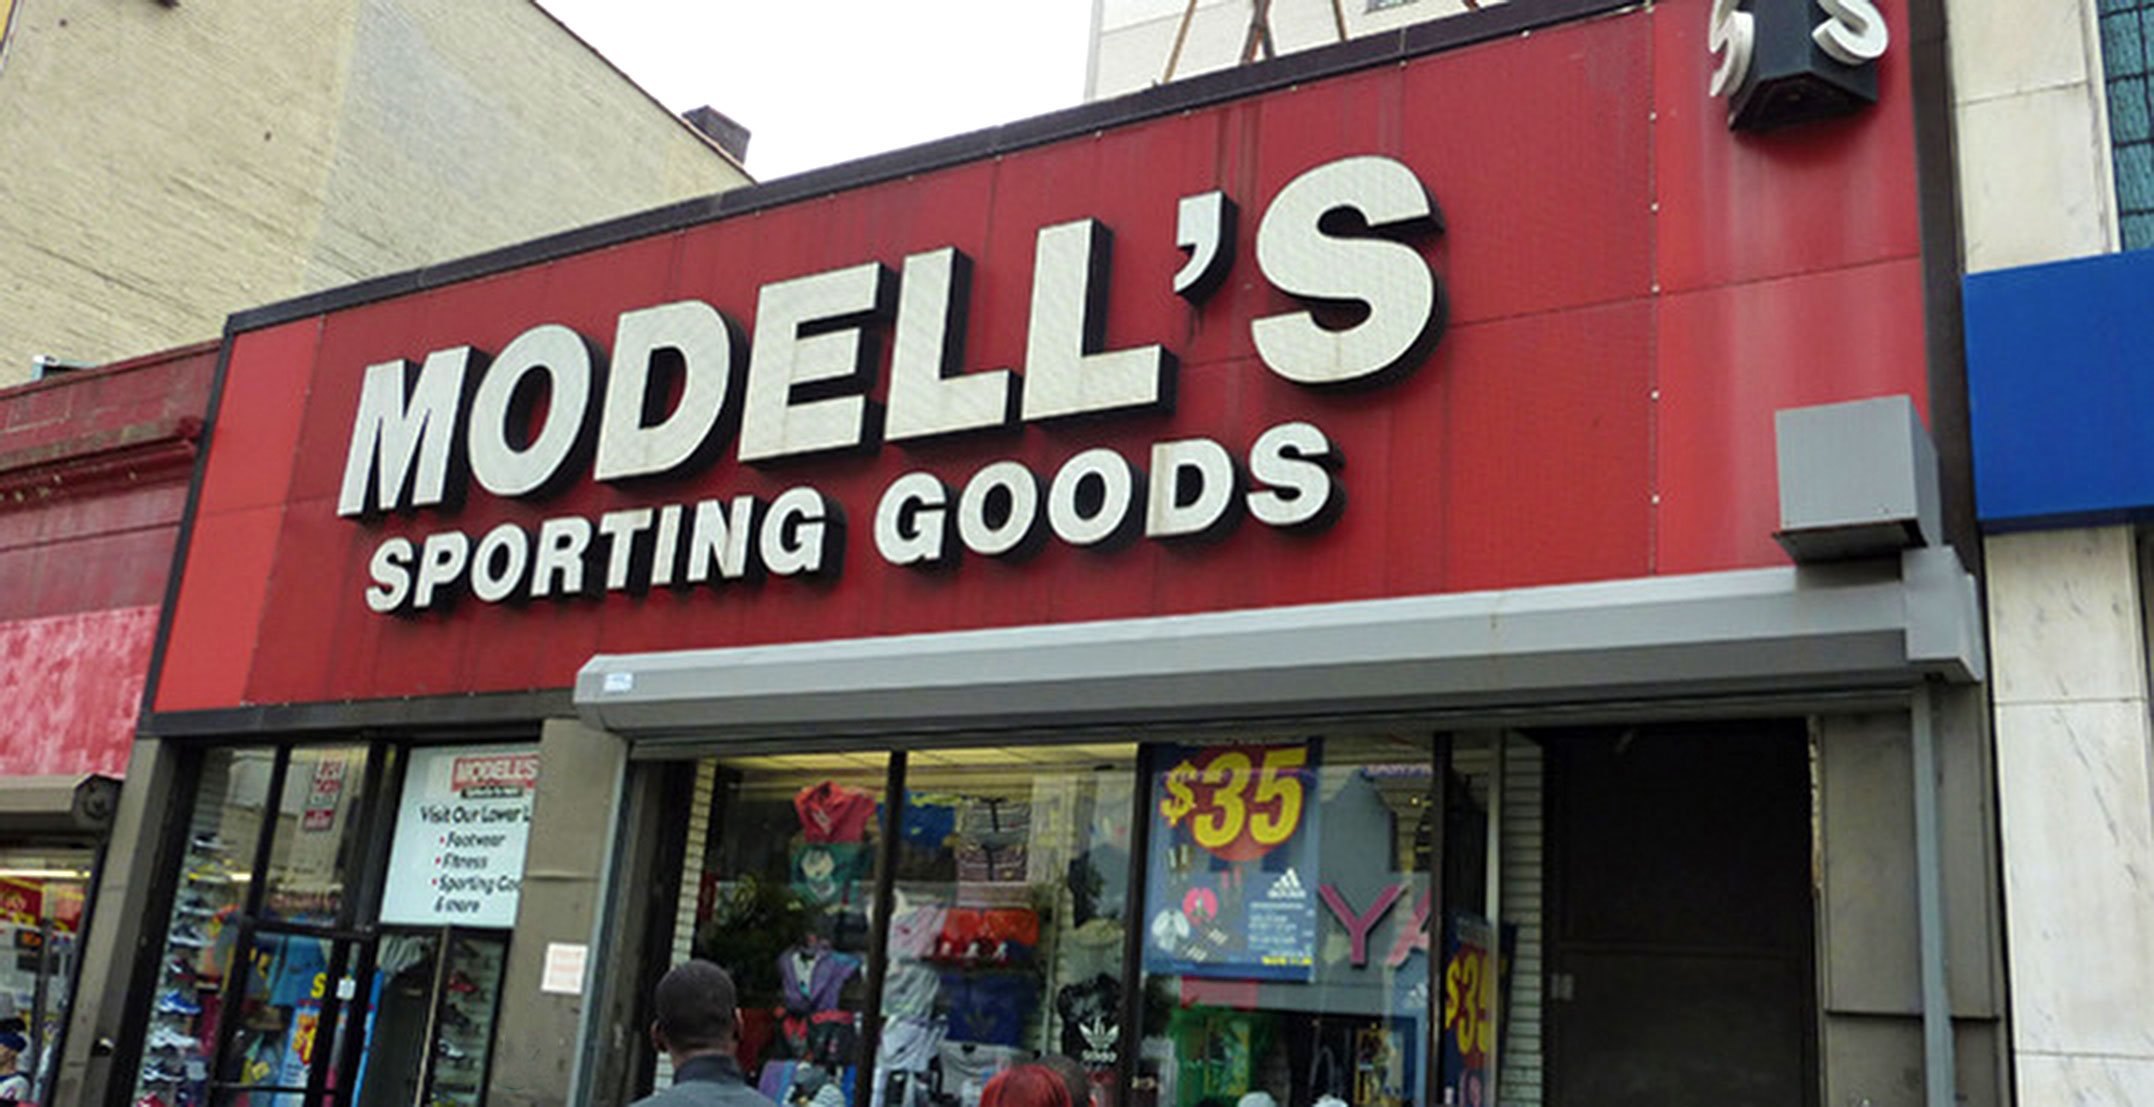 Modell's Sporting Goods - Downtown Brooklyn